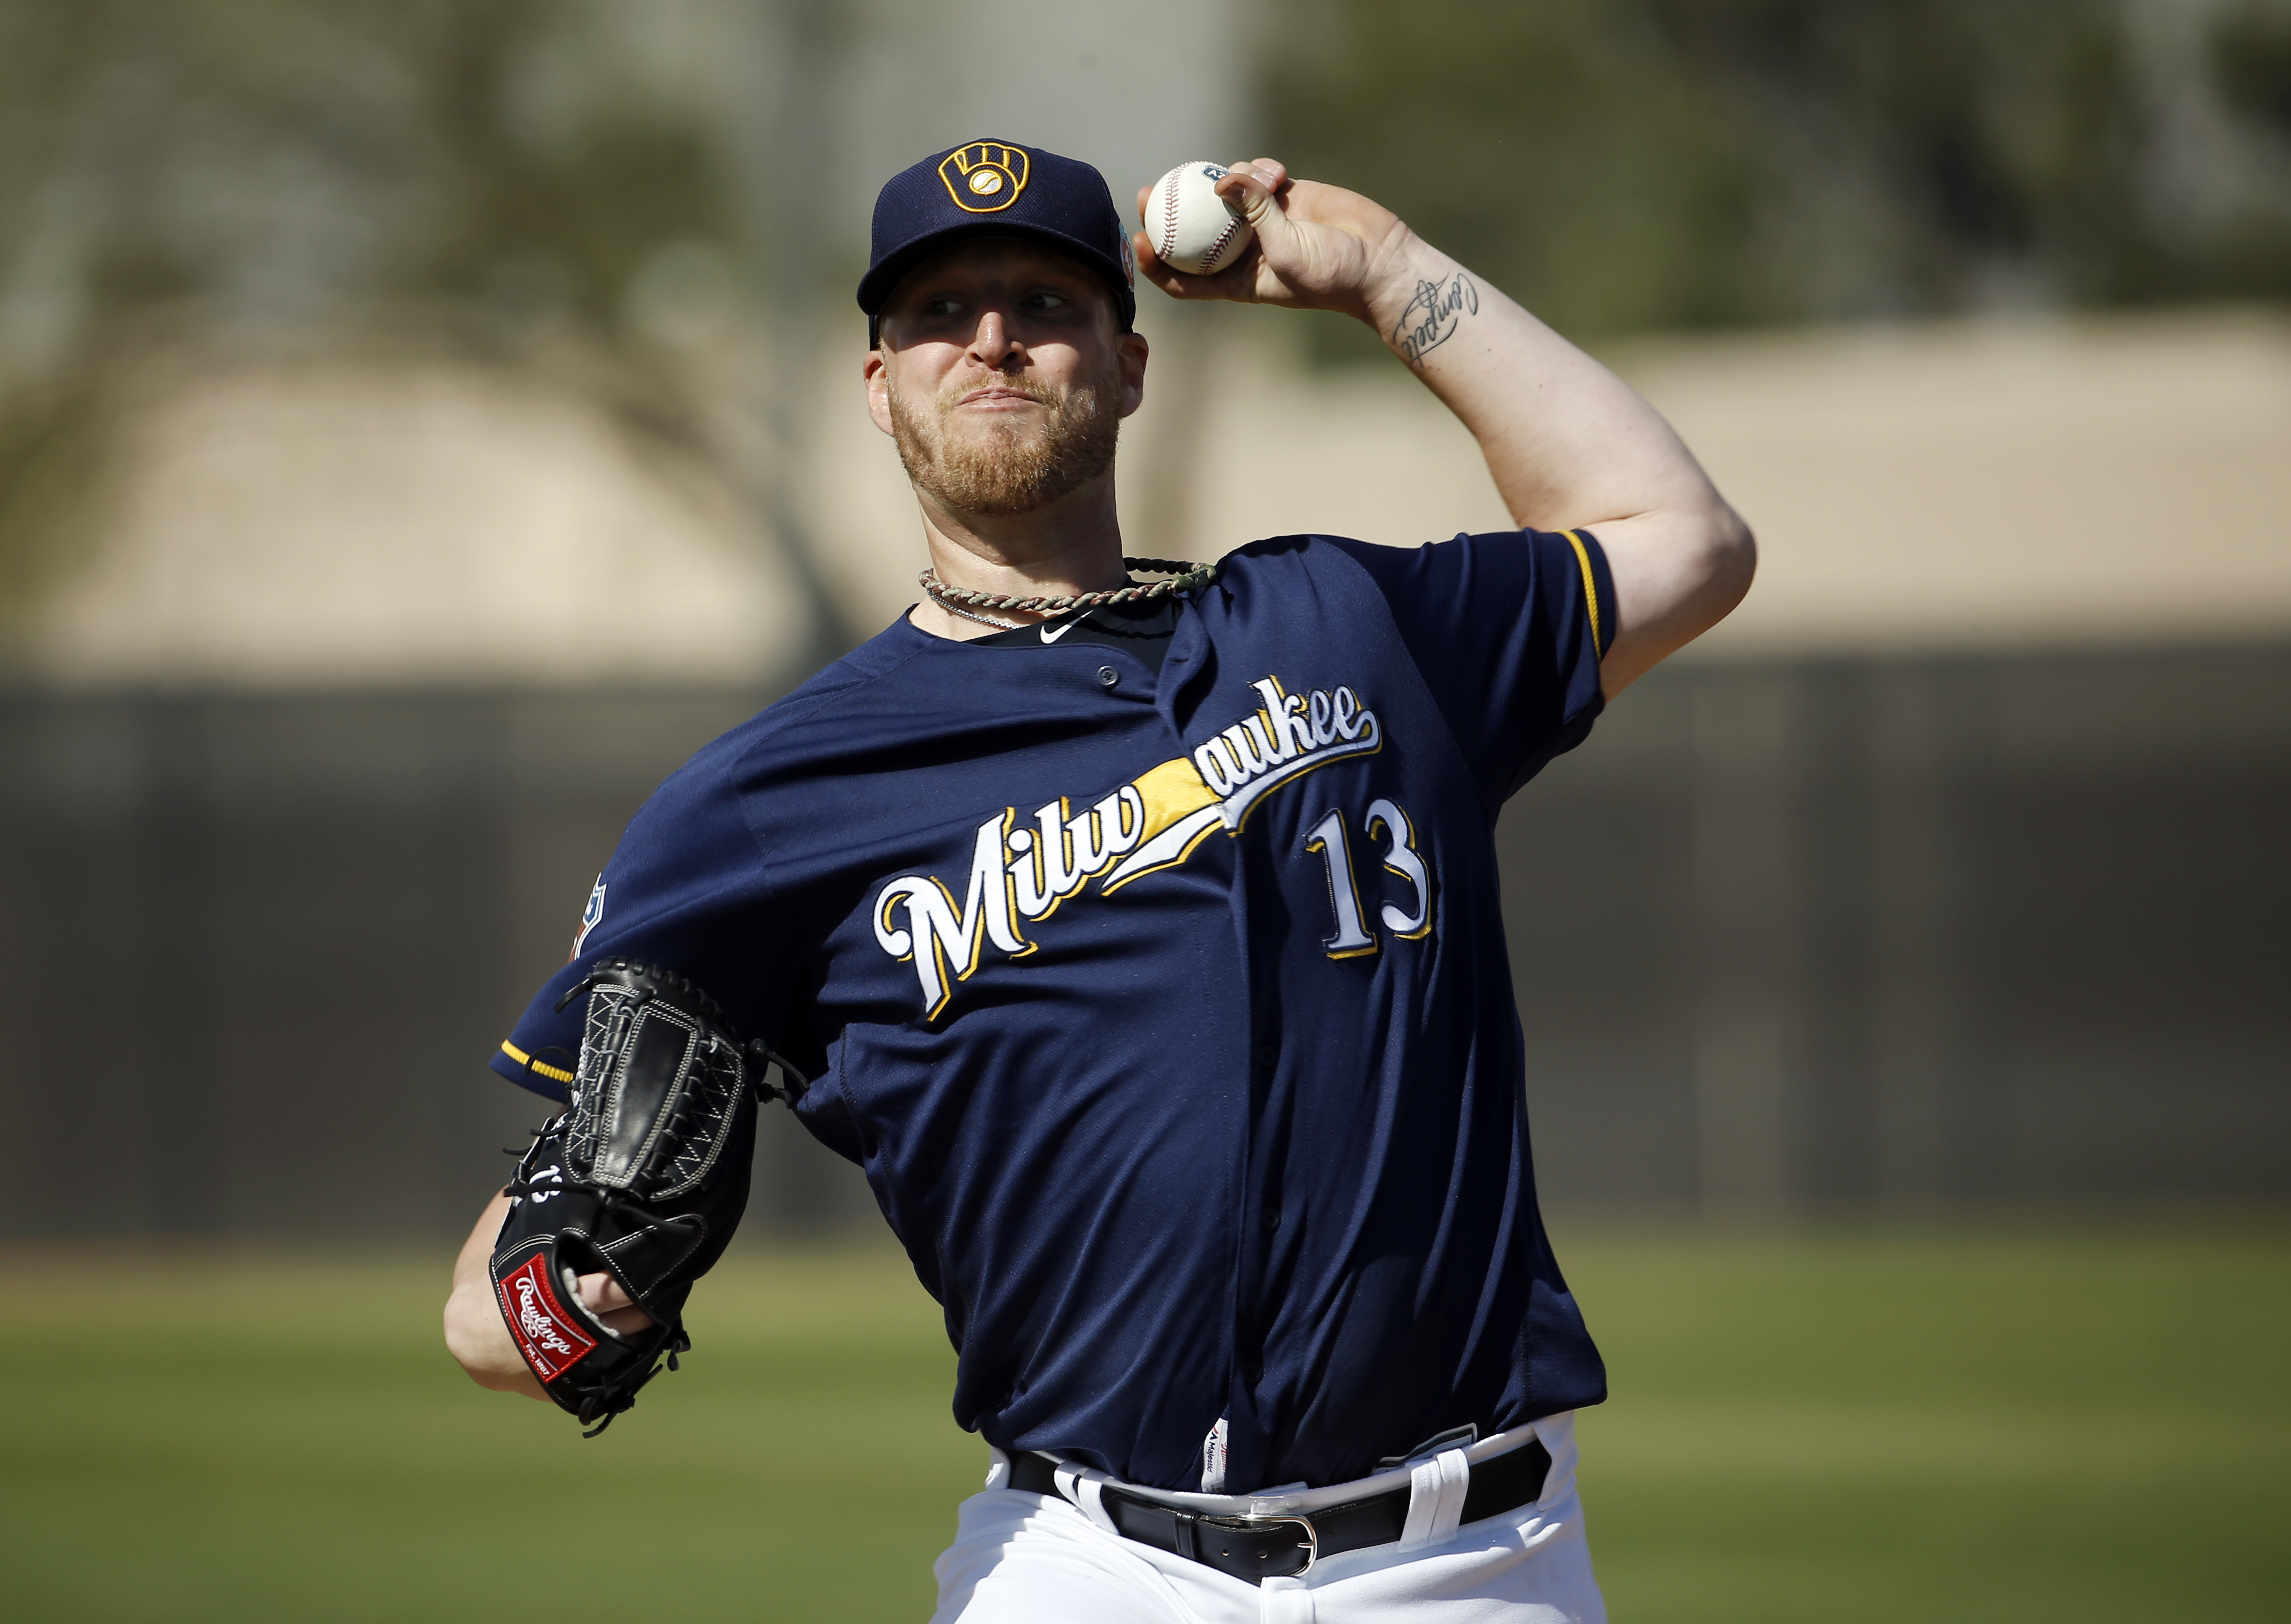 FILE - In this Tuesday, March 1, 2016 file photo, Milwaukee Brewers' Will Smith throws during a spring training baseball workout in Phoenix. The Milwaukee Brewers will start the season without reliever Will Smith, who tore a ligament in his right knee whi